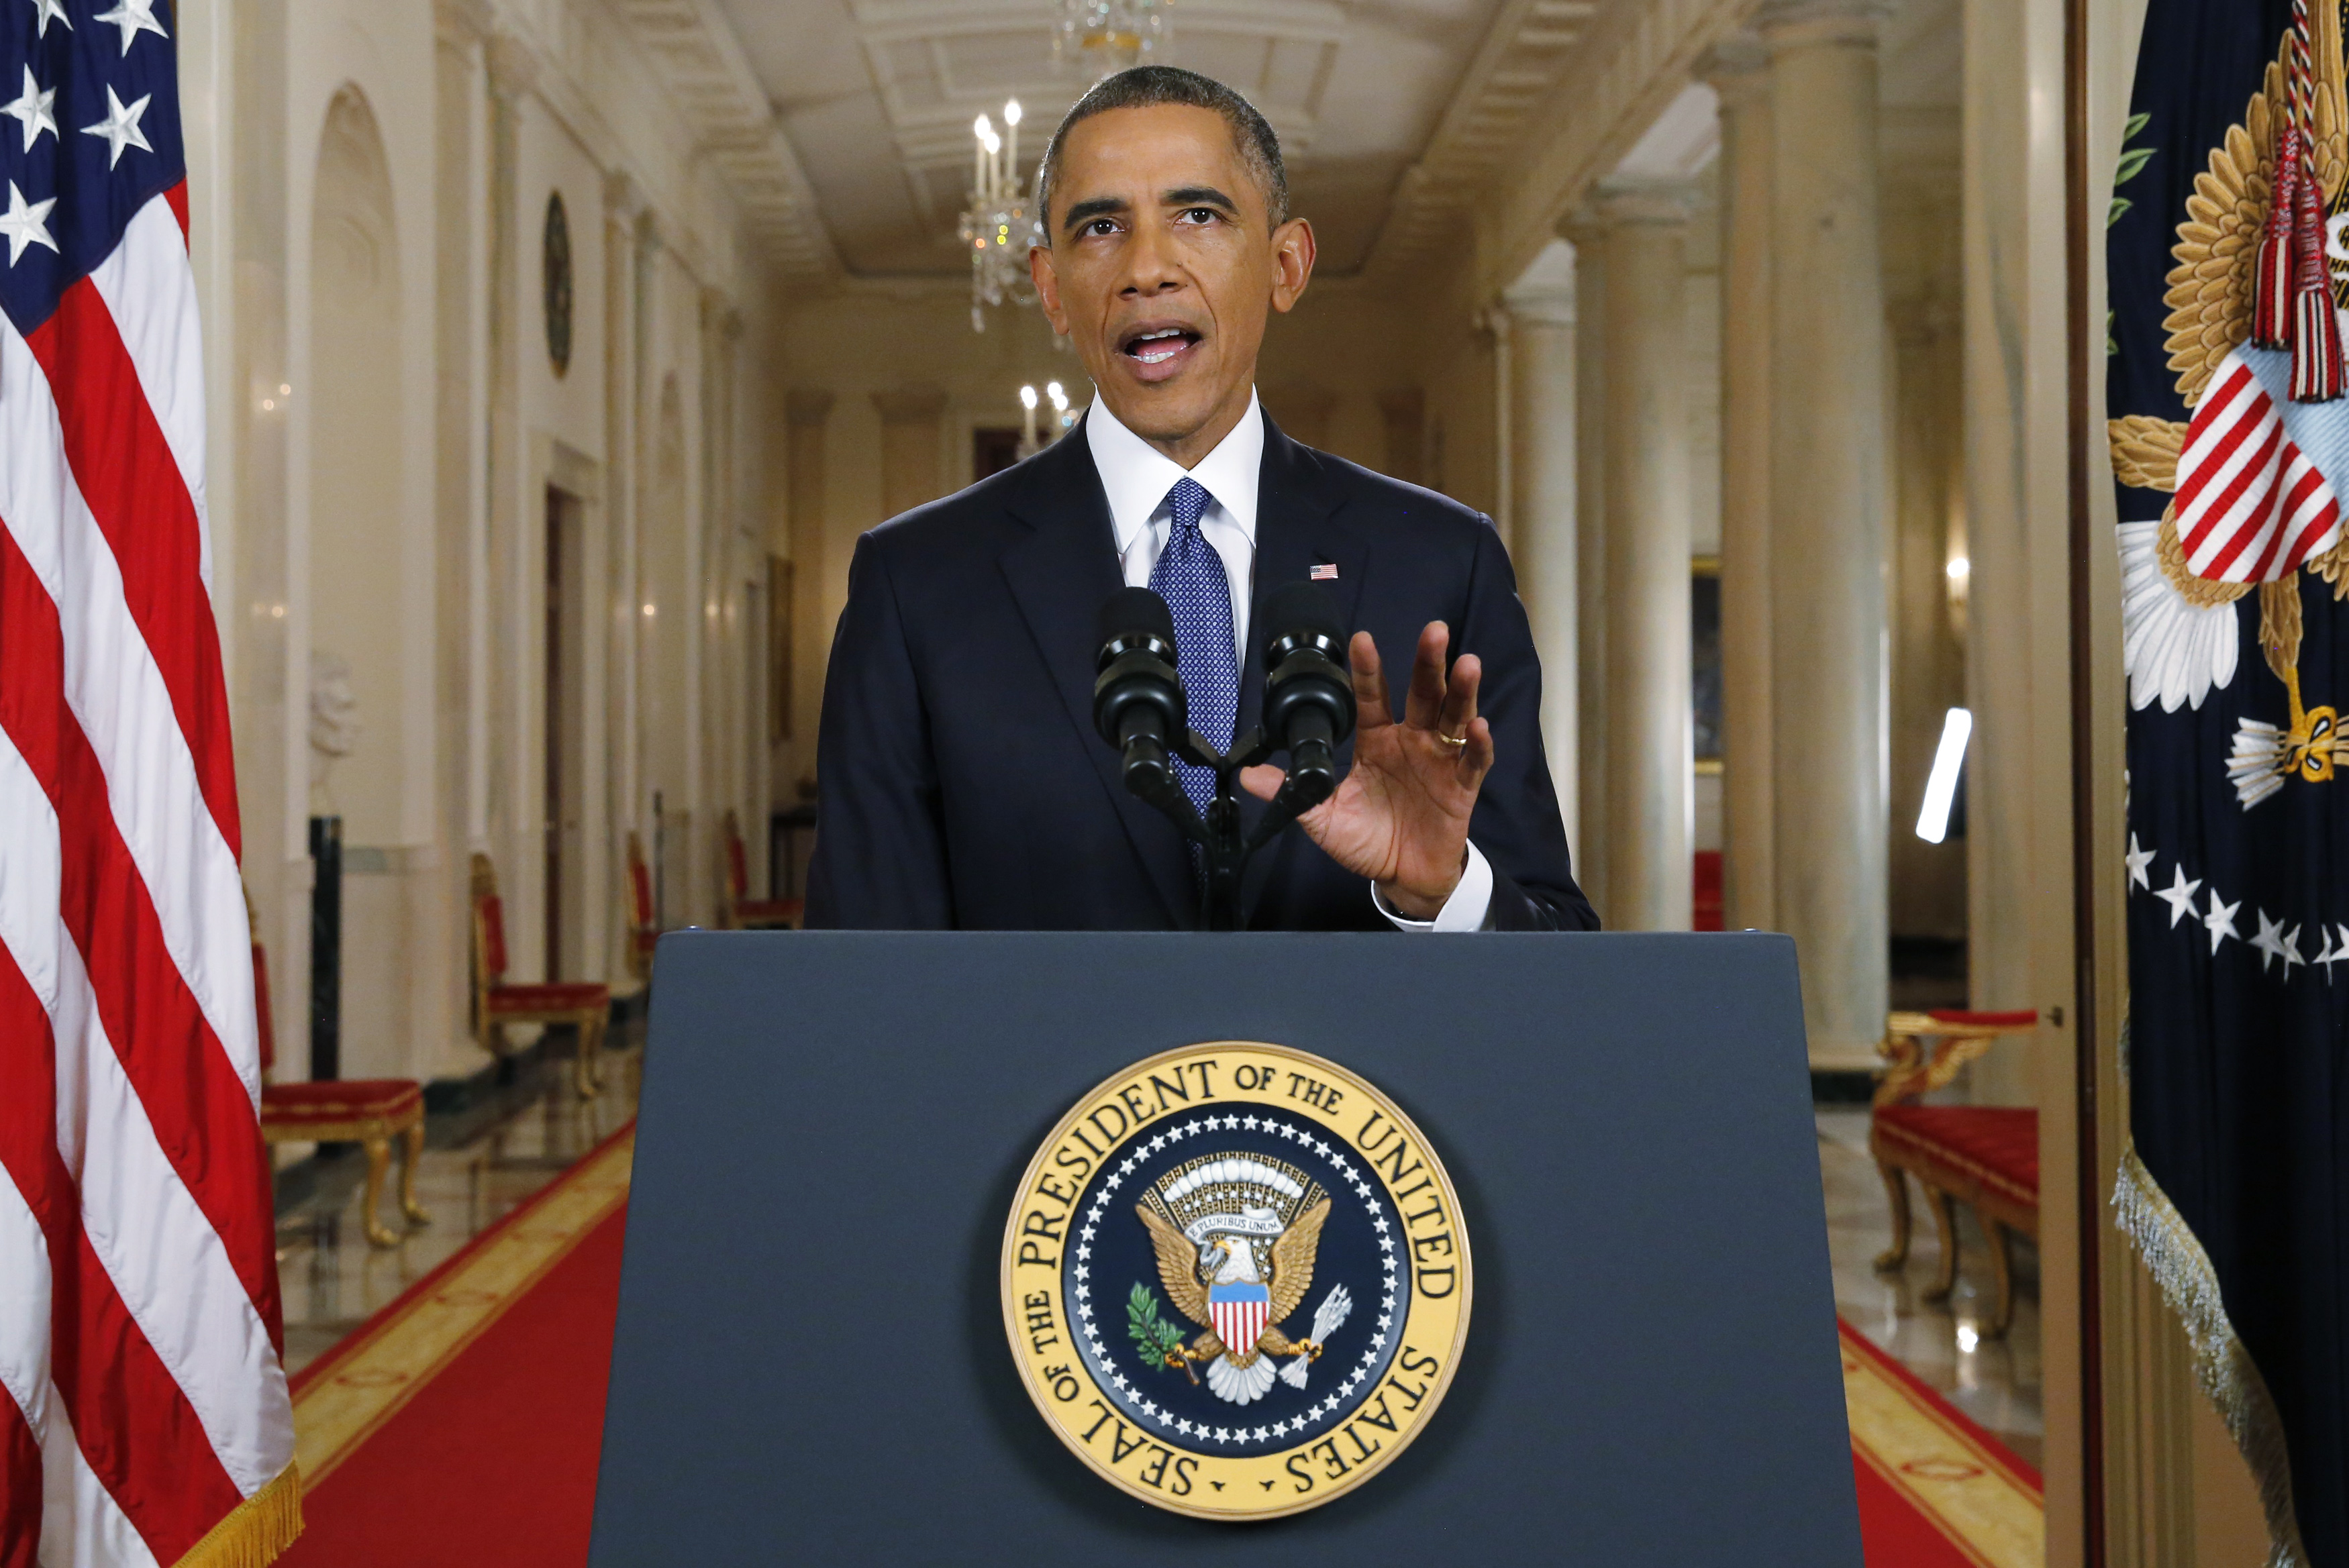 President Obama announces executive actions on US immigration policy during a nationally televised address from the White House.